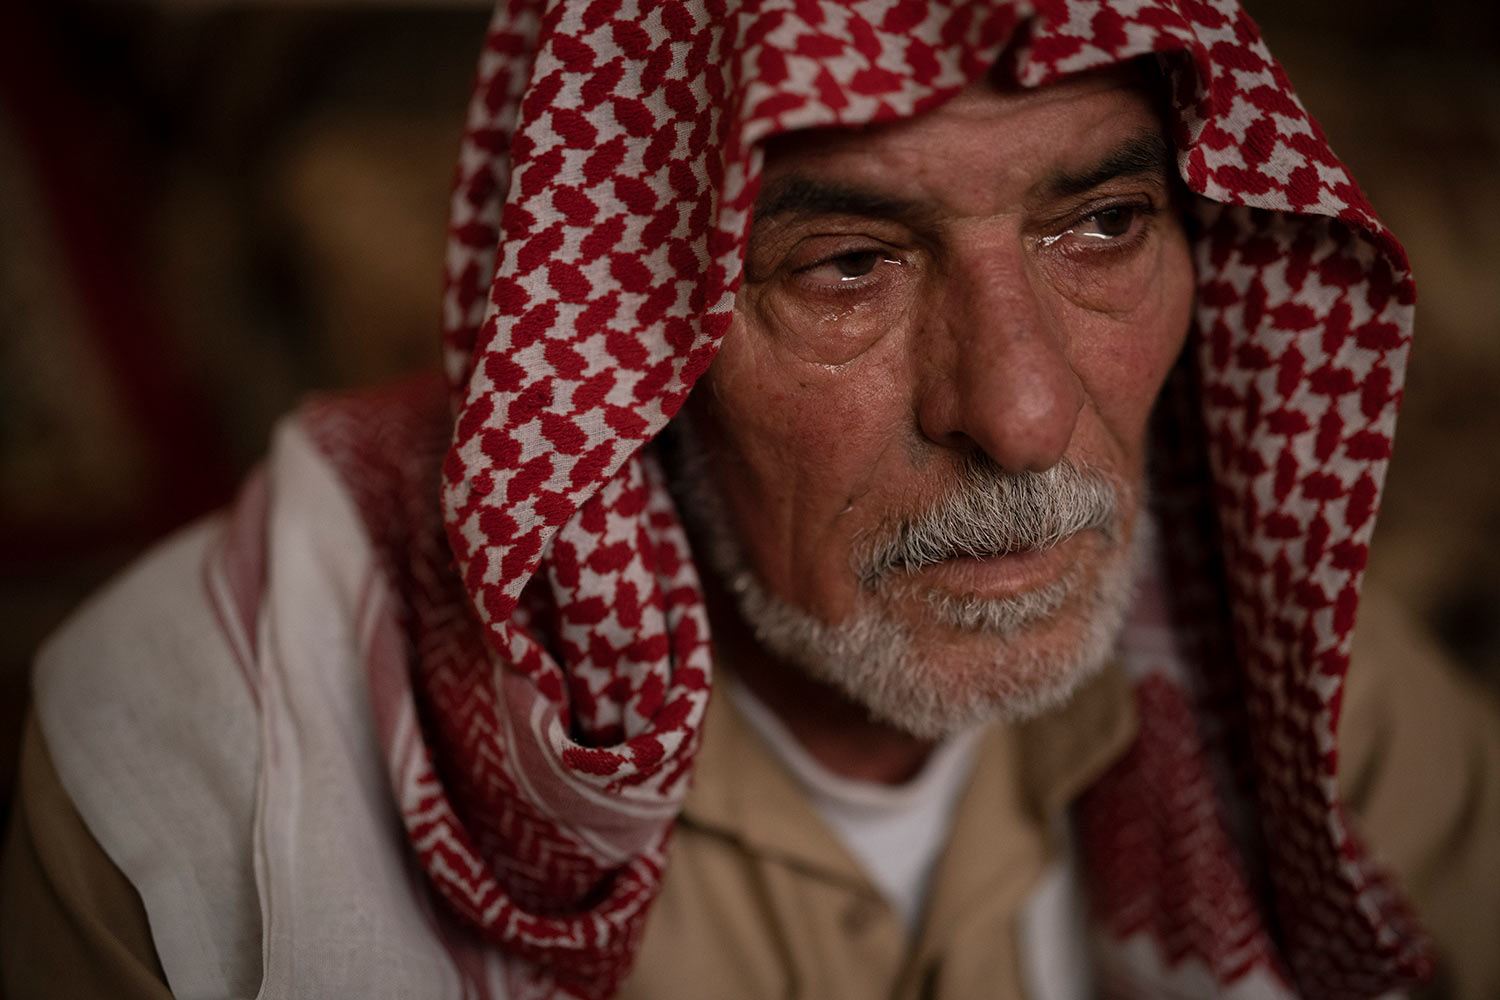 In this April 14, 2019 photo, Hussein Abd cries while talking about the death of his three sons as he sits in his house in Mosul, Iraq. They were killed in Badoush by Islamic State militants in a chilling attack last January. (AP Photo/Felipe Dana)